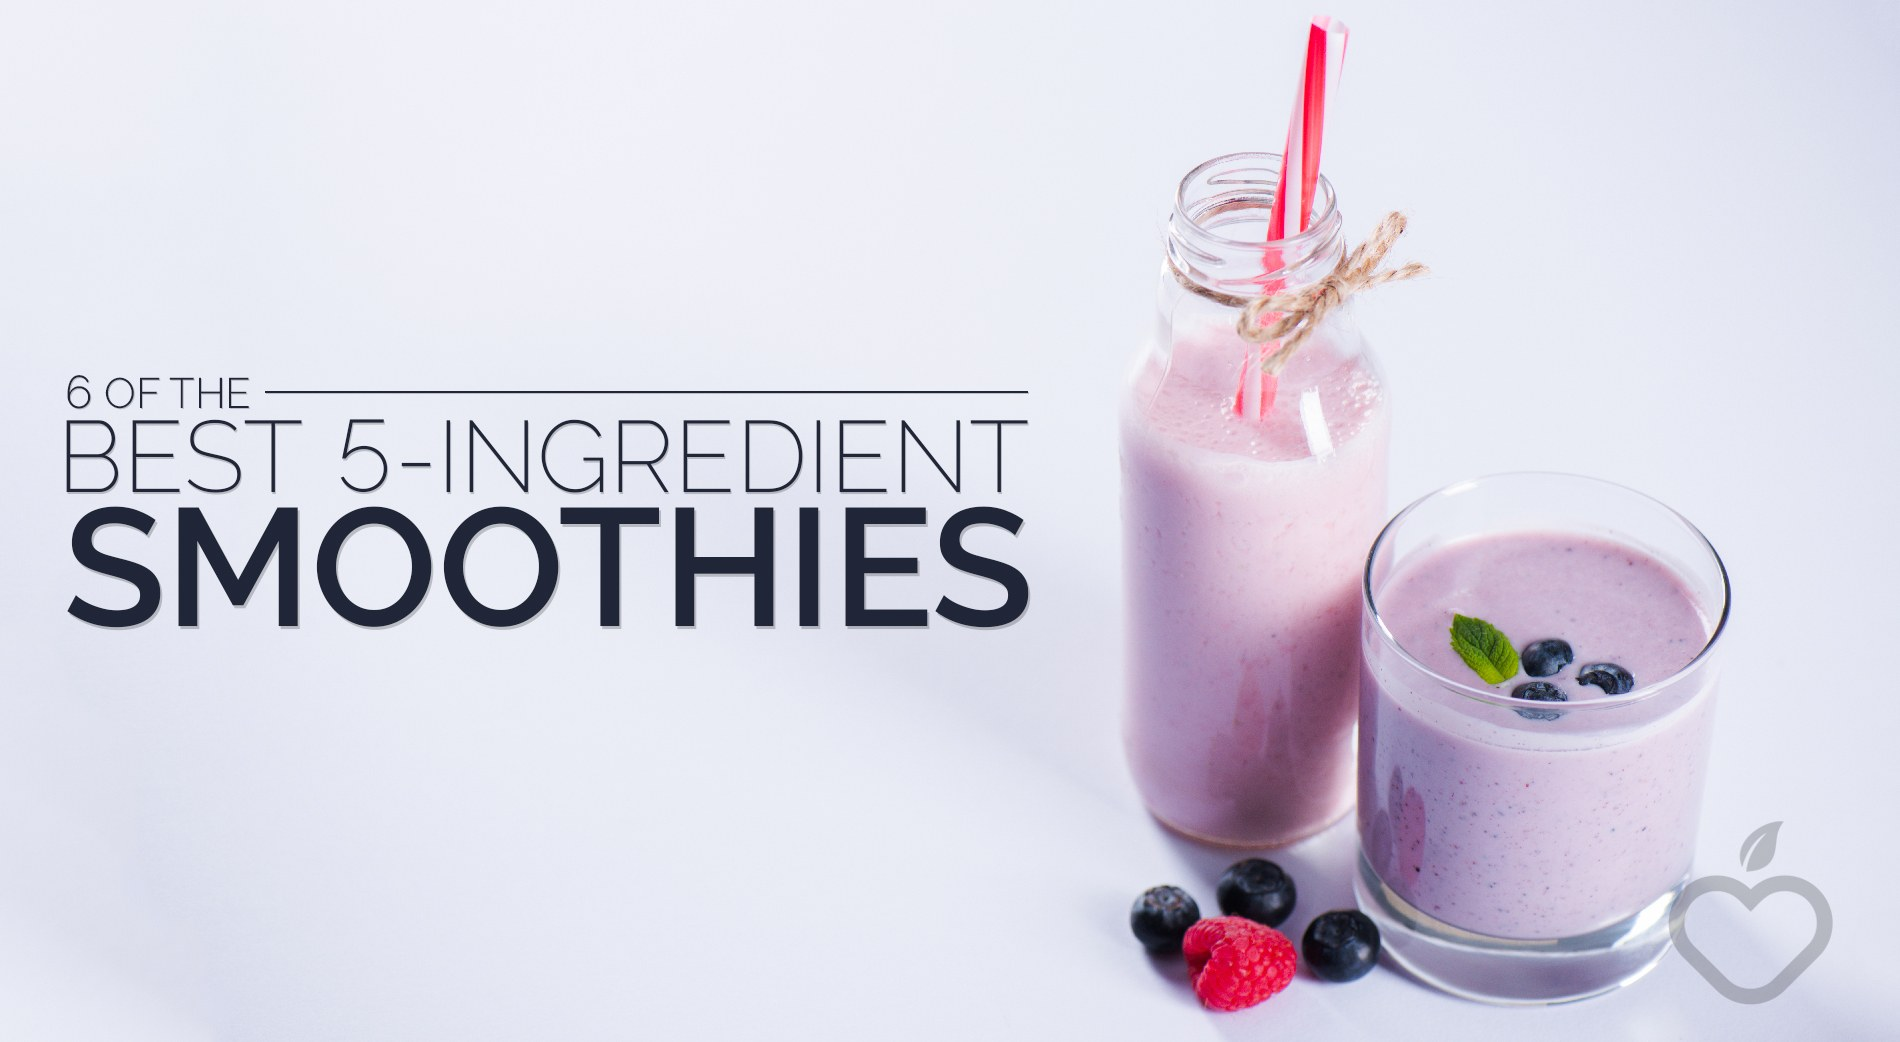 5 Ingredient Smoothies Image Design 1 - 6 Of The Best 5-Ingredient Smoothies